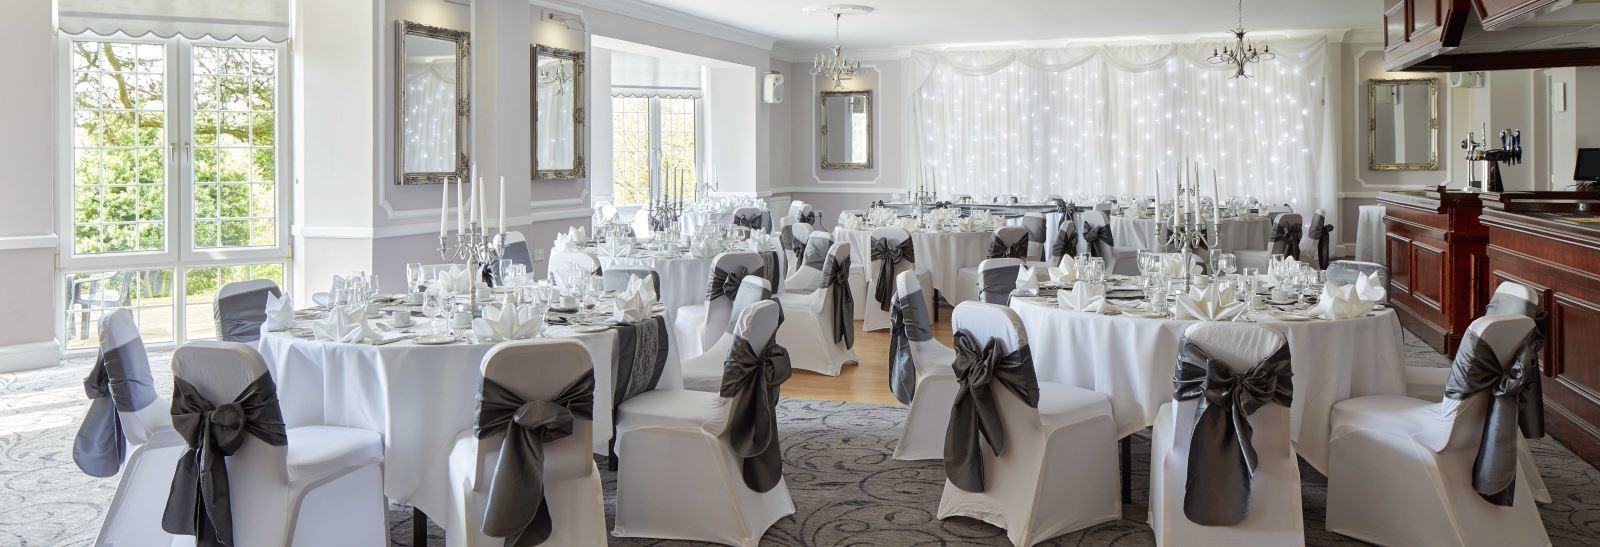 top wedding venues in cardiff